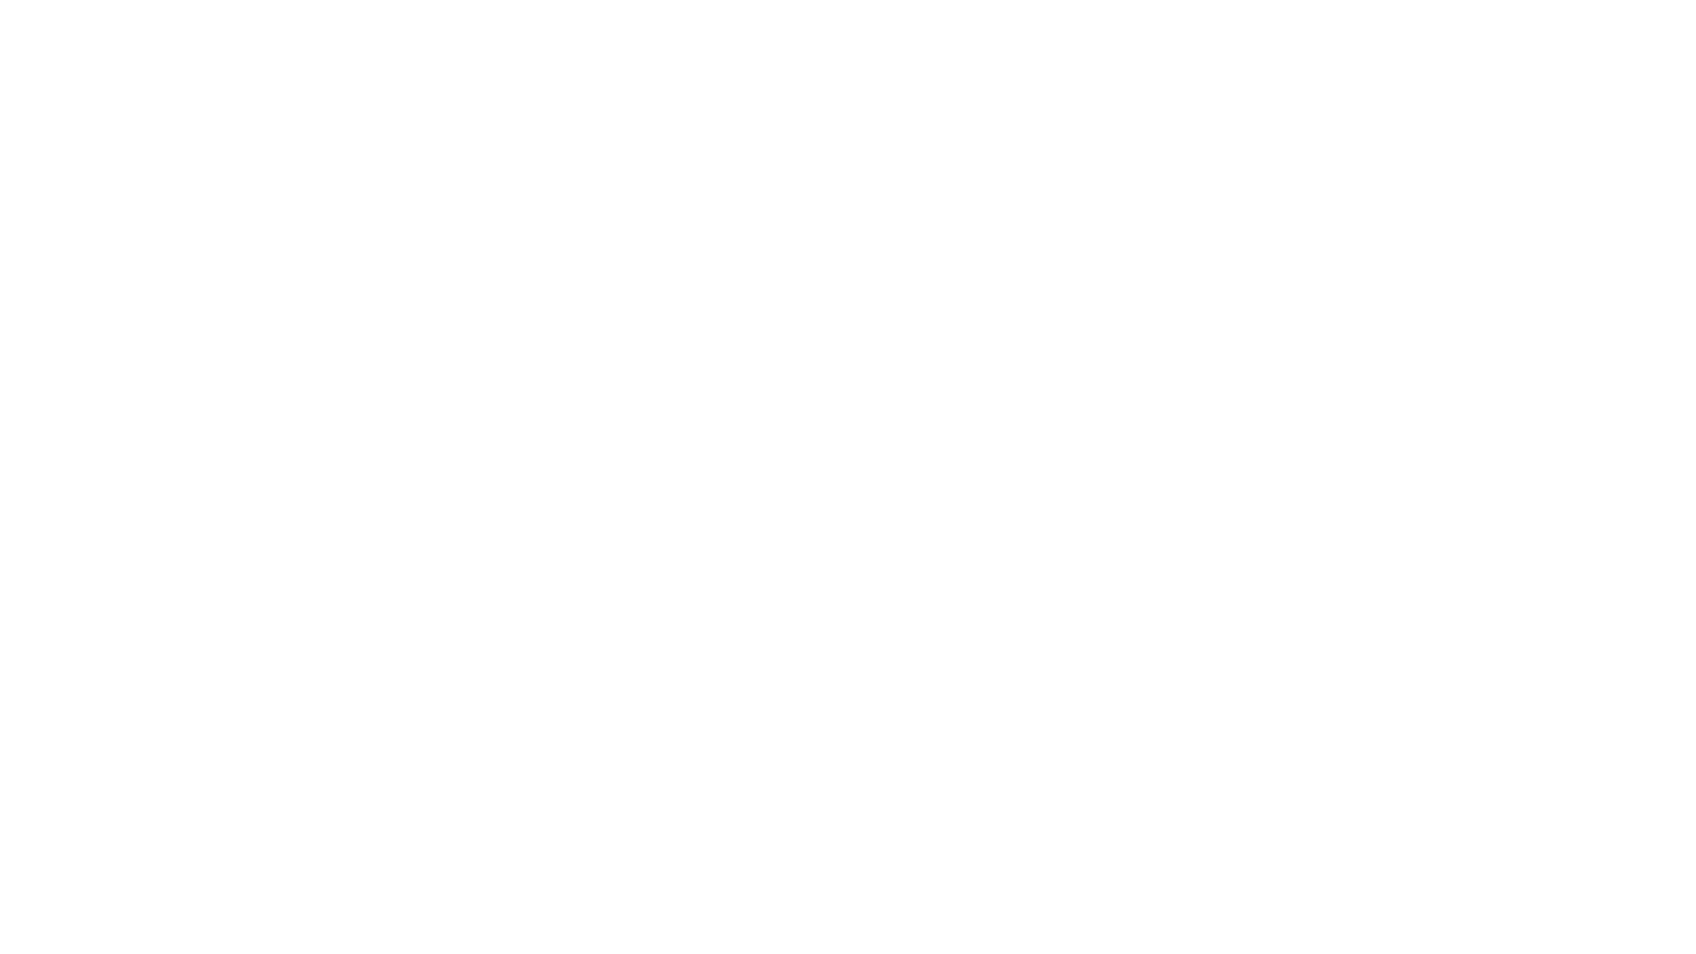 Pulso - Passionate people, healthy organisations